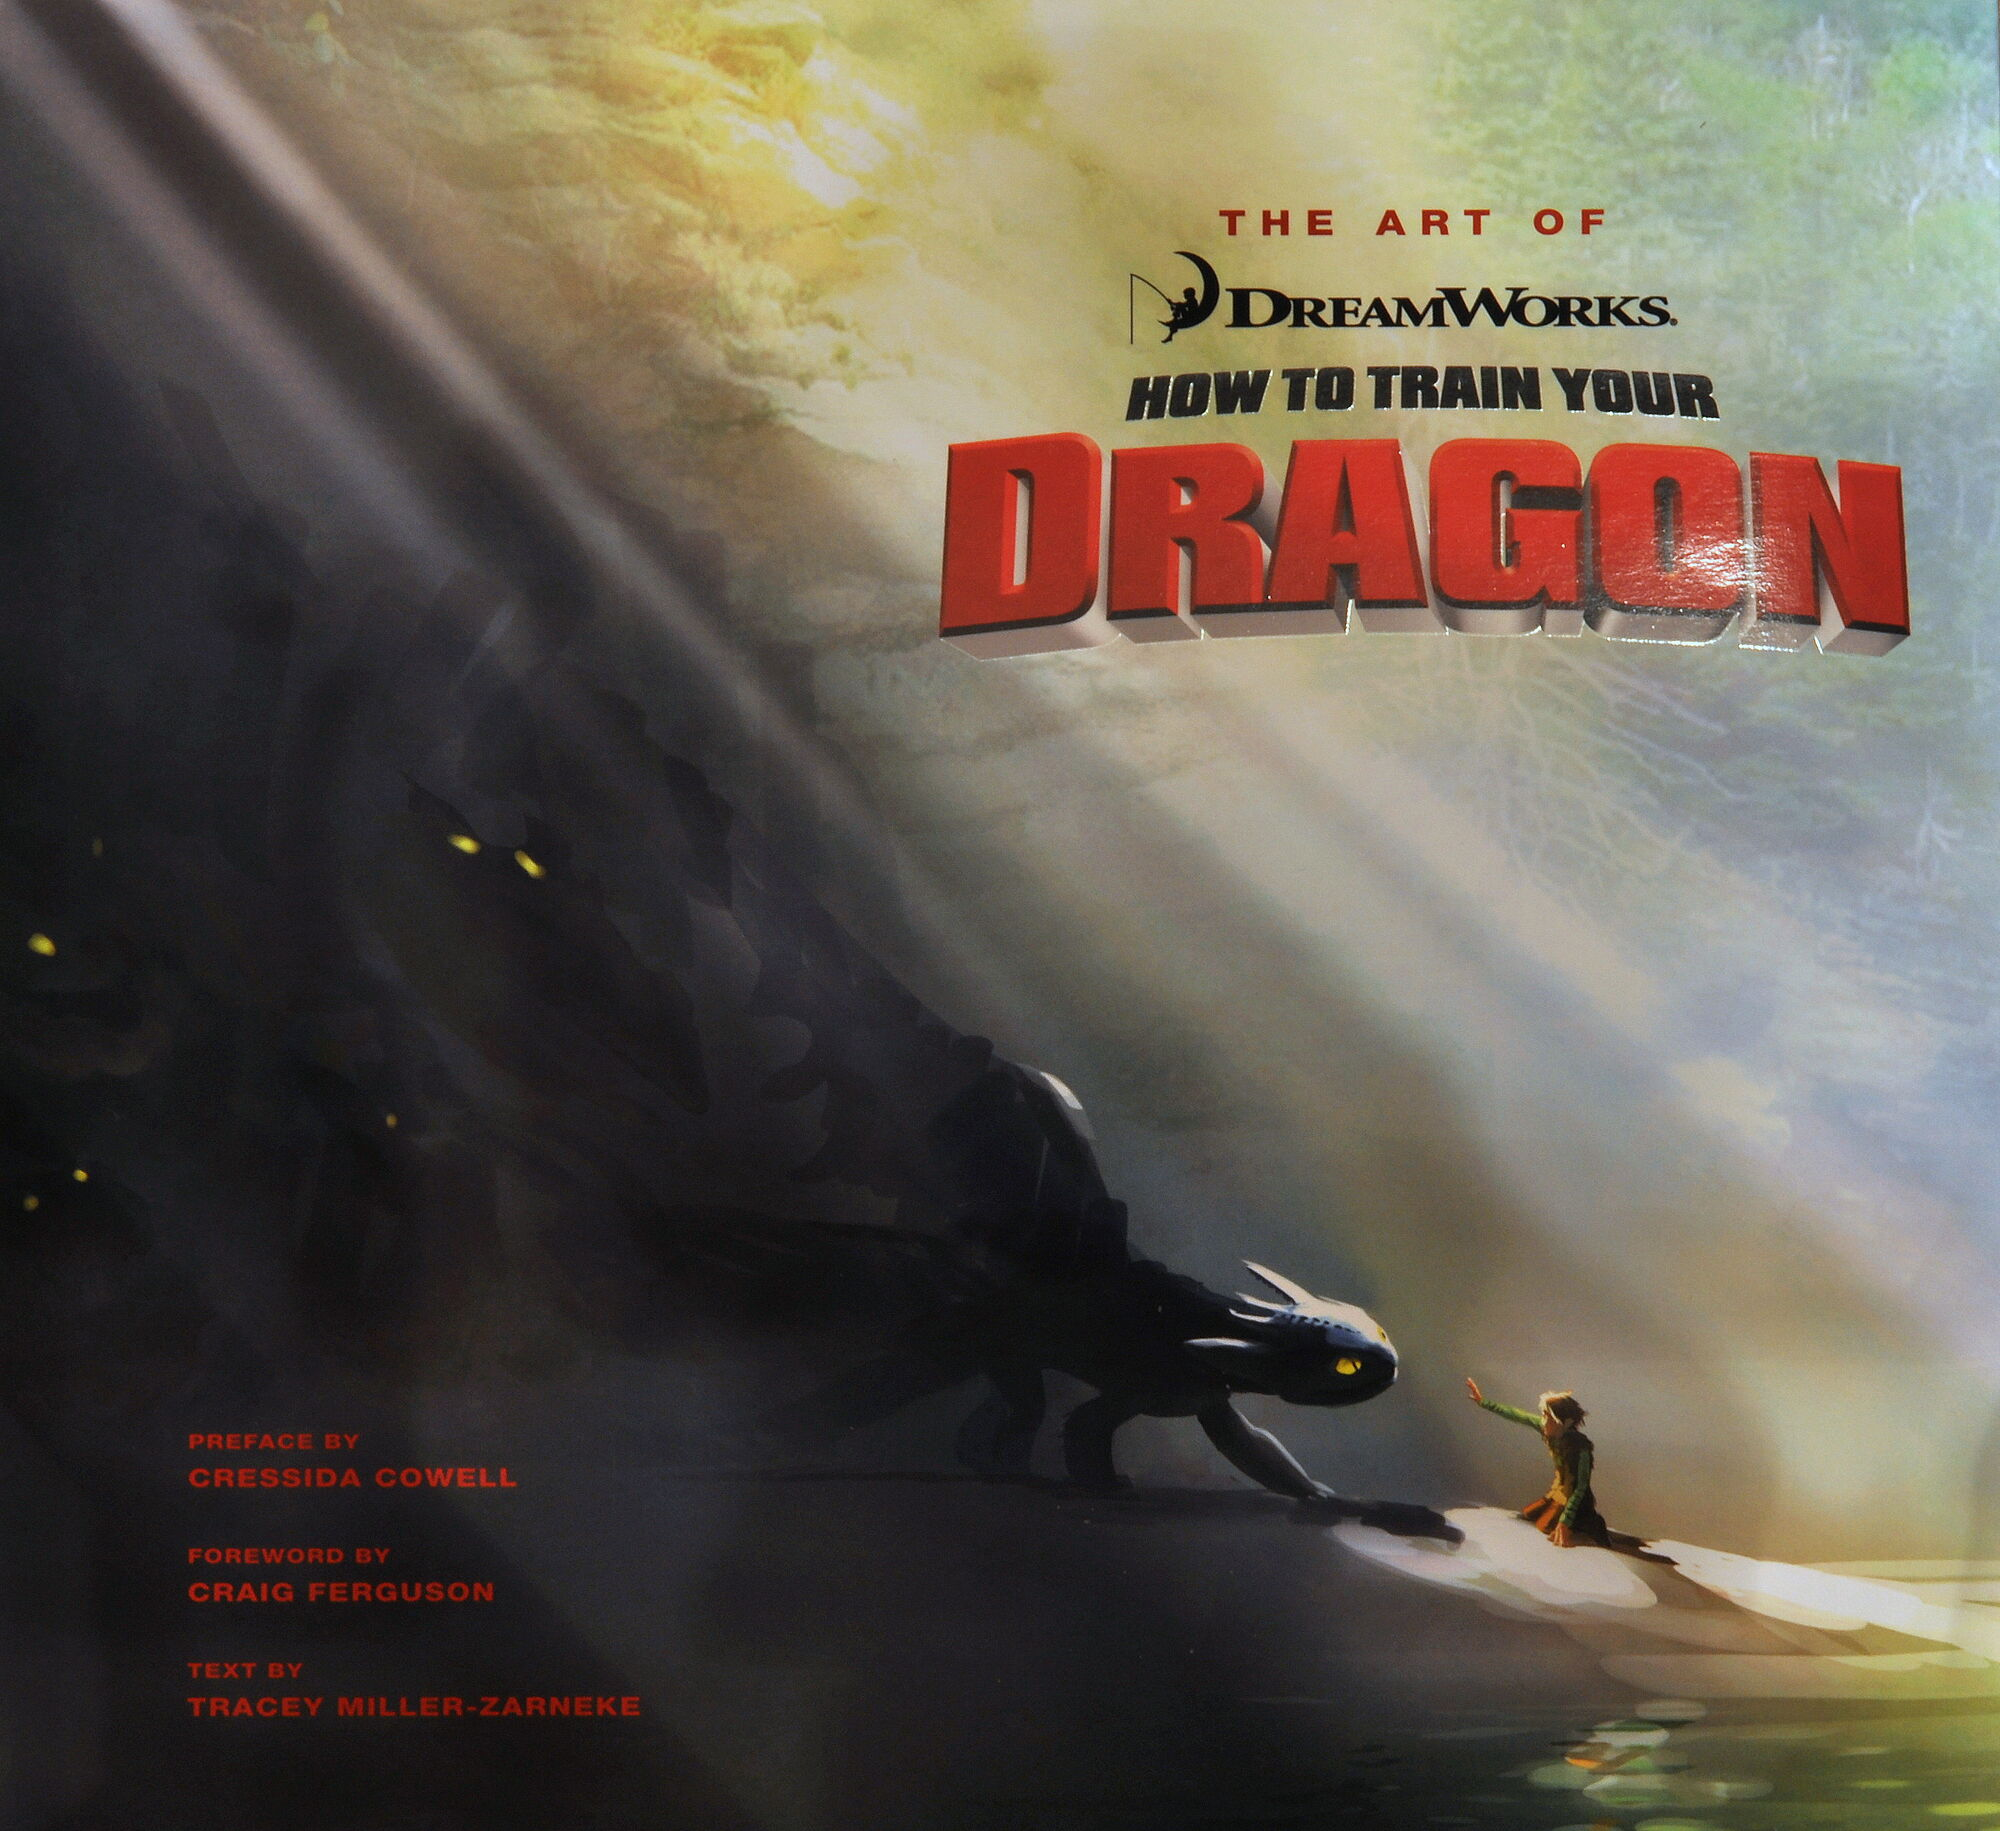 The art of how to train your dragon dreamworks animation wiki the art of how to train your dragon dreamworks animation wiki fandom powered by wikia ccuart Choice Image